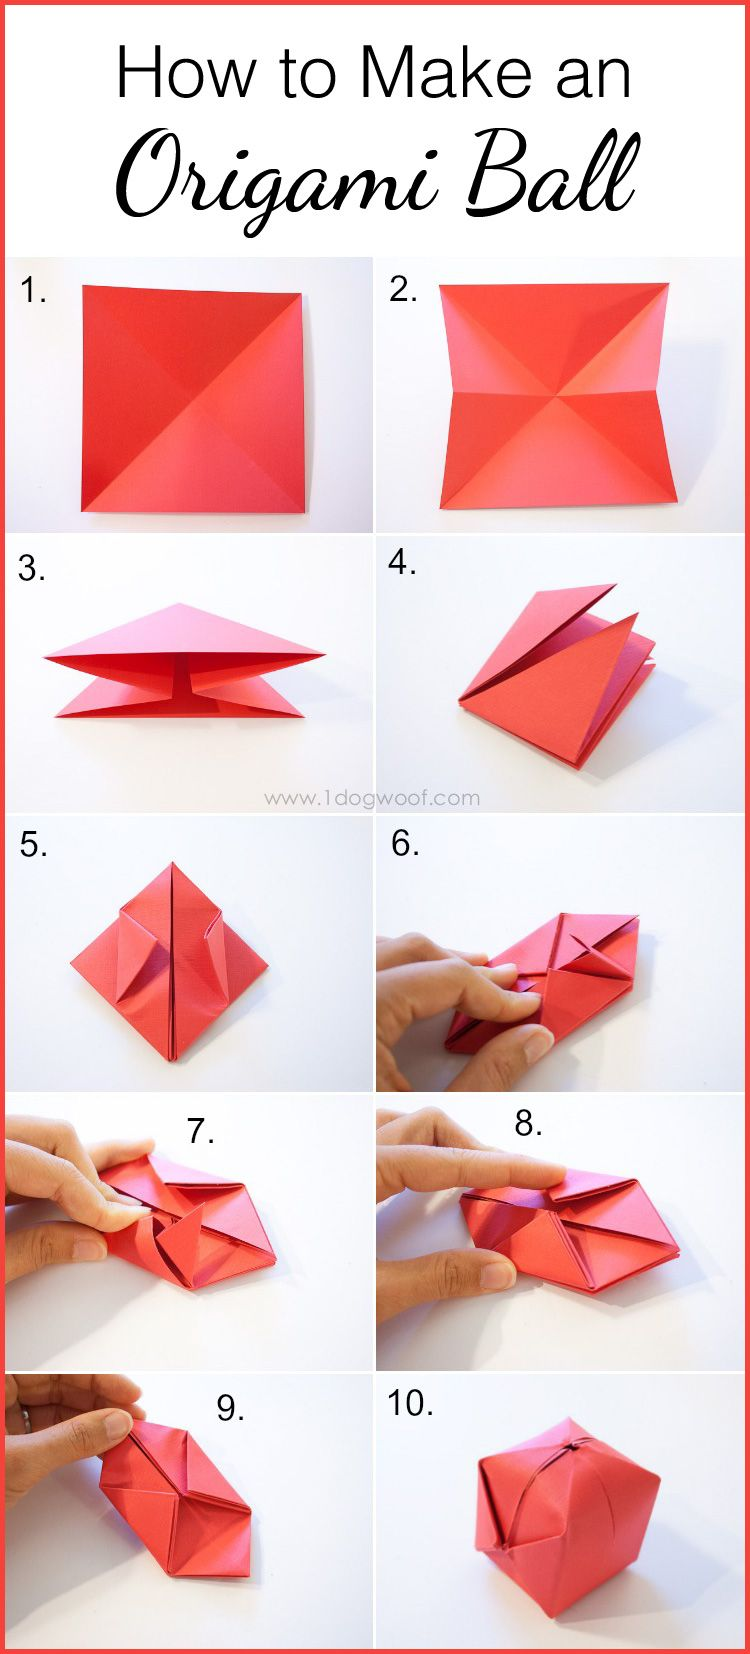 How To Make An Origami Ball